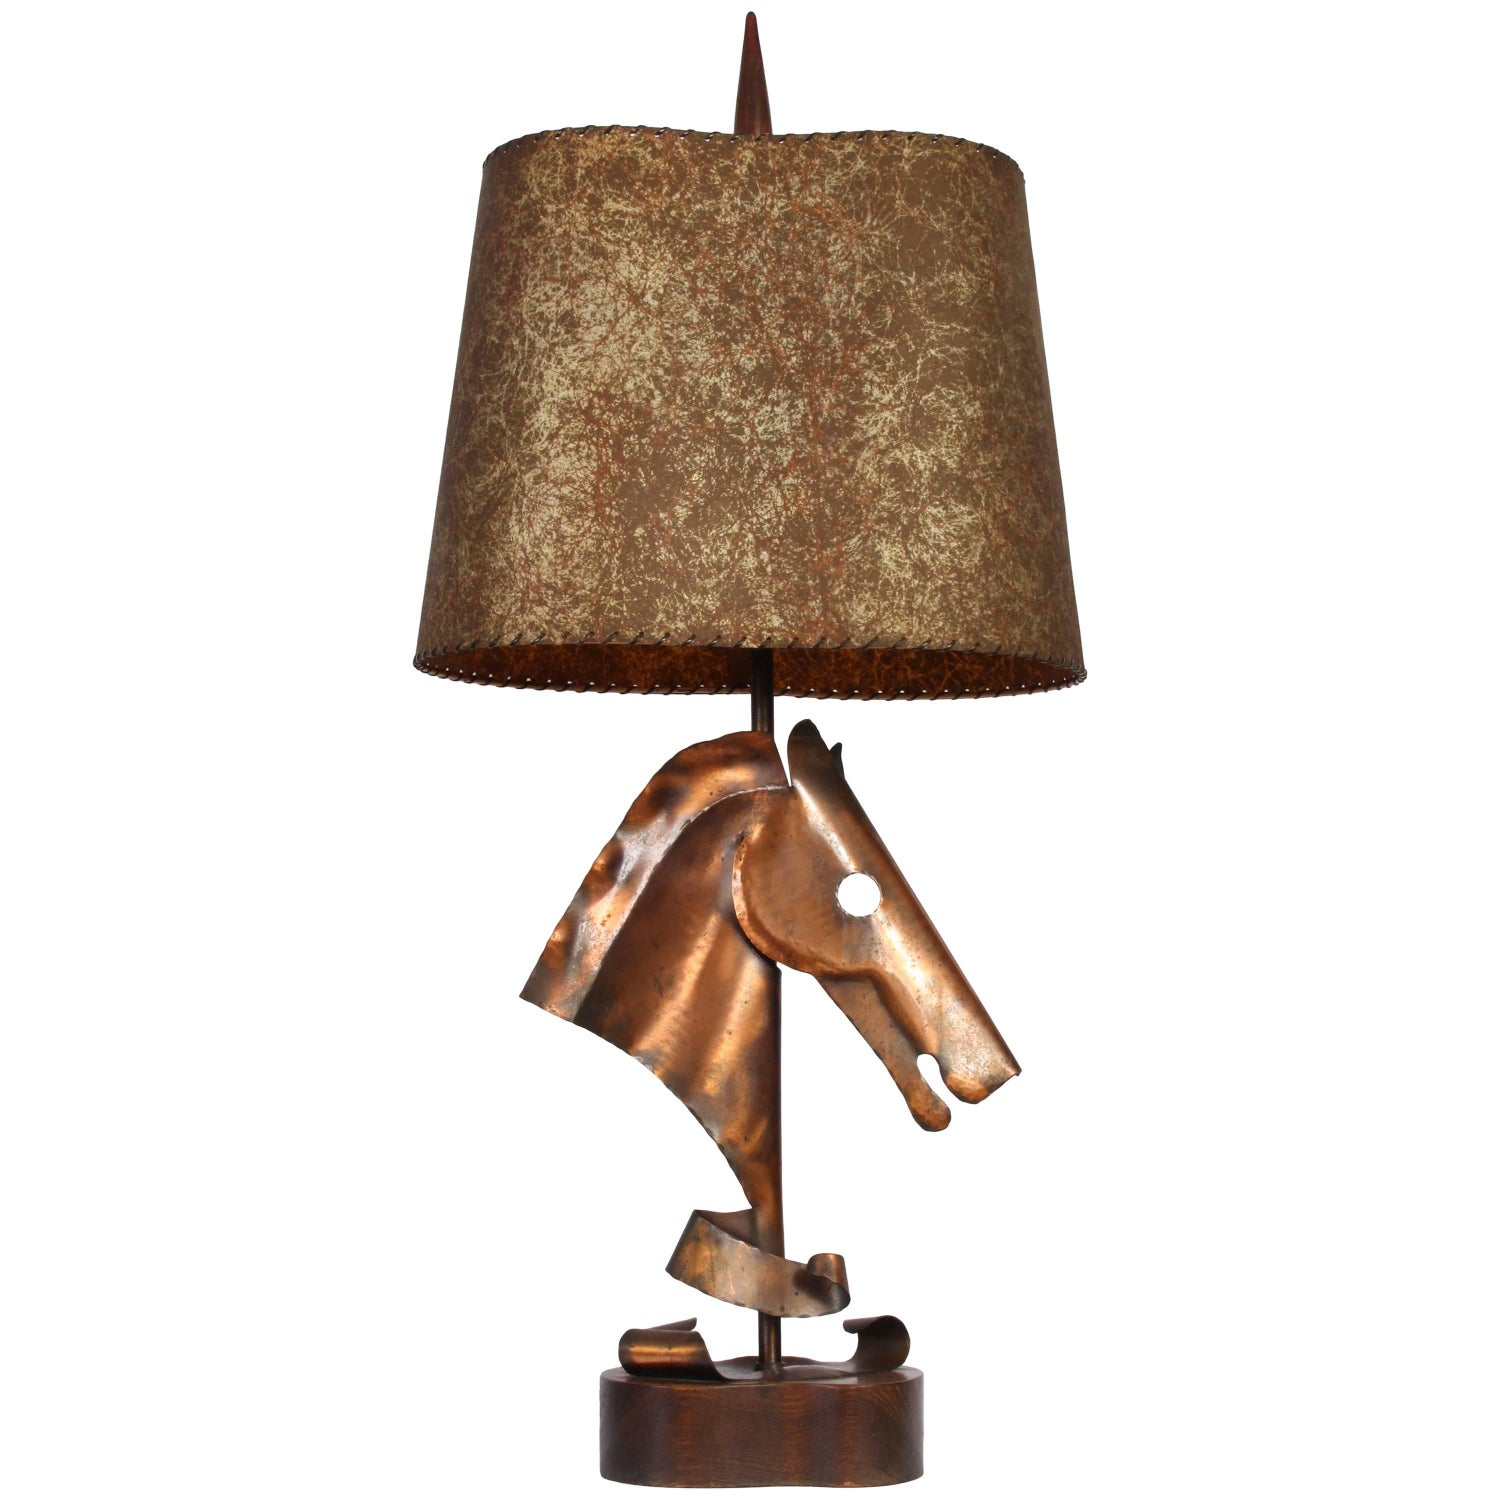 Yasha heifetz table lamps 23 for sale at 1stdibs yasha heifetz hammered copper horse head table lamp circa 1950 keyboard keysfo Image collections